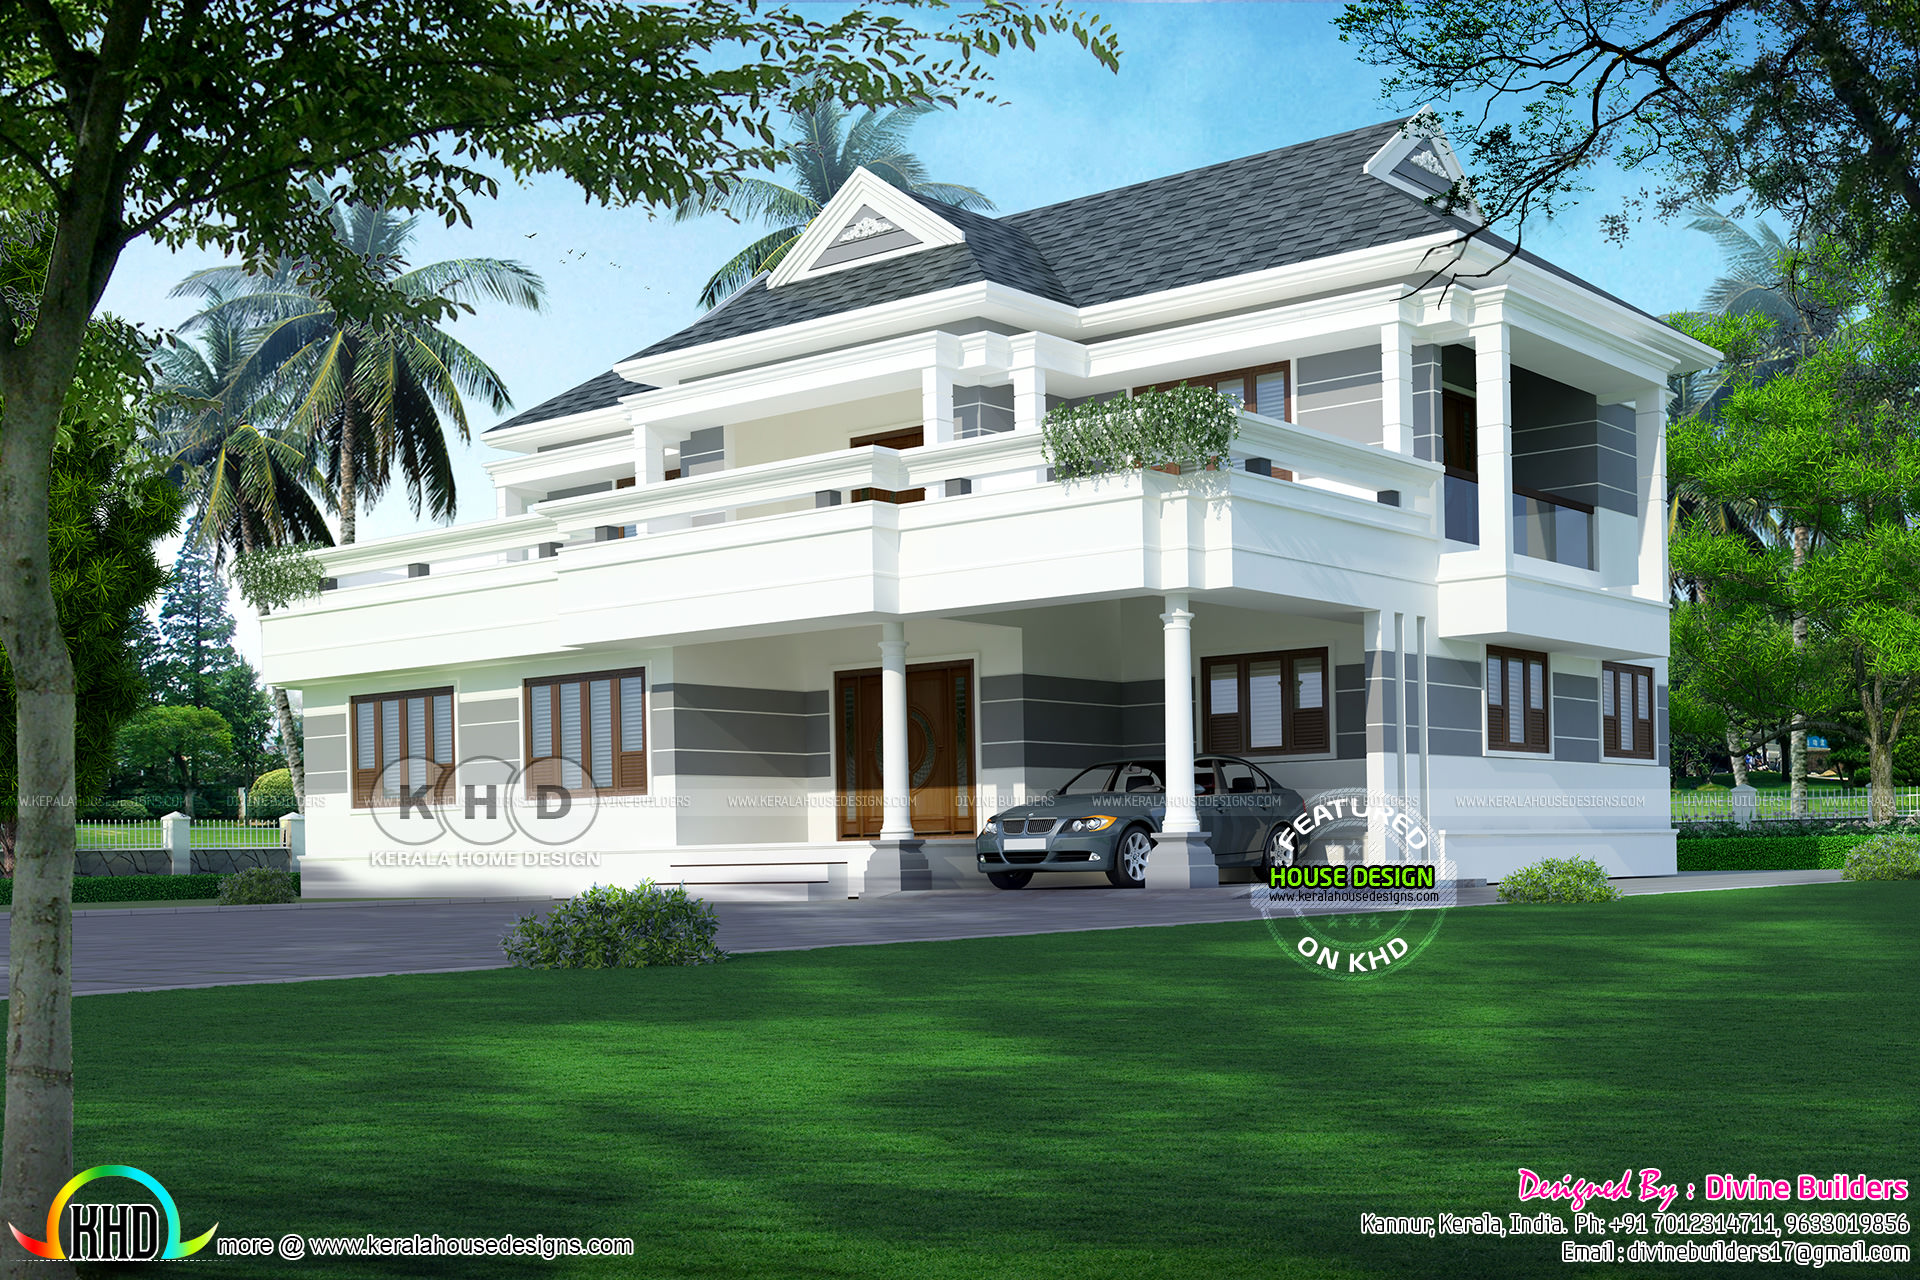 35 Lakhs Construction Cost Estimated Home Kerala Home